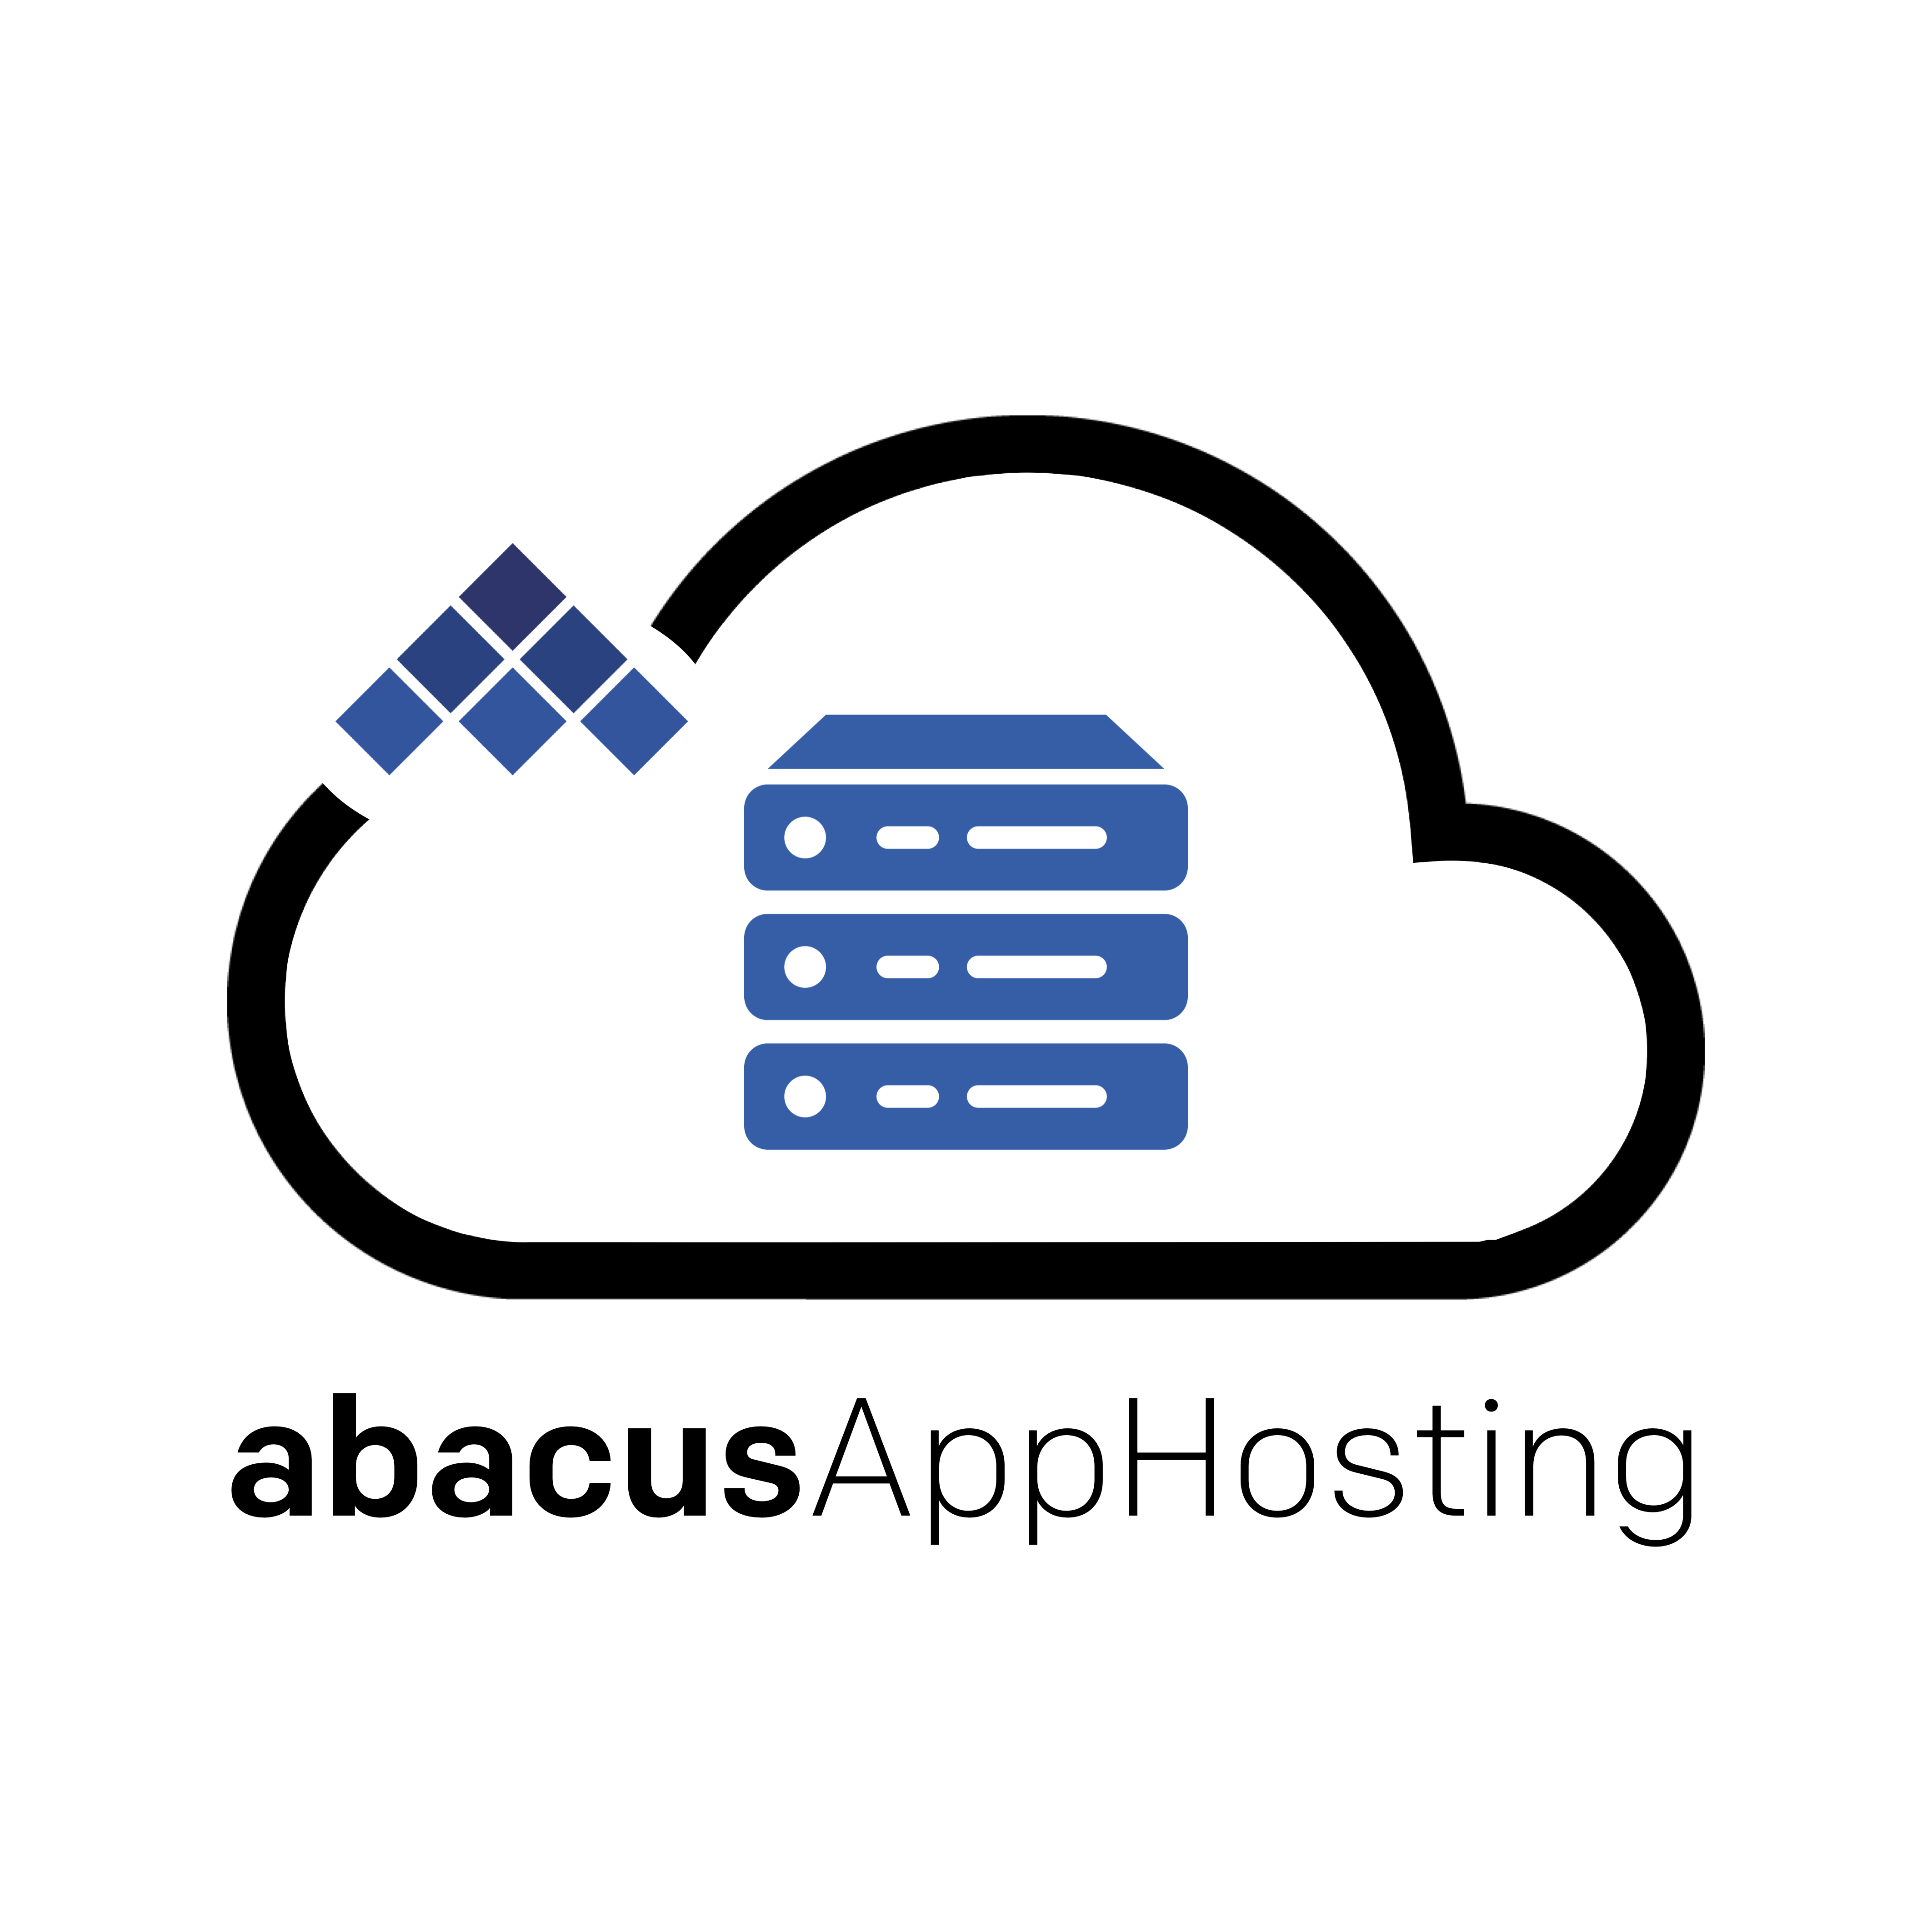 abacusAppHosting